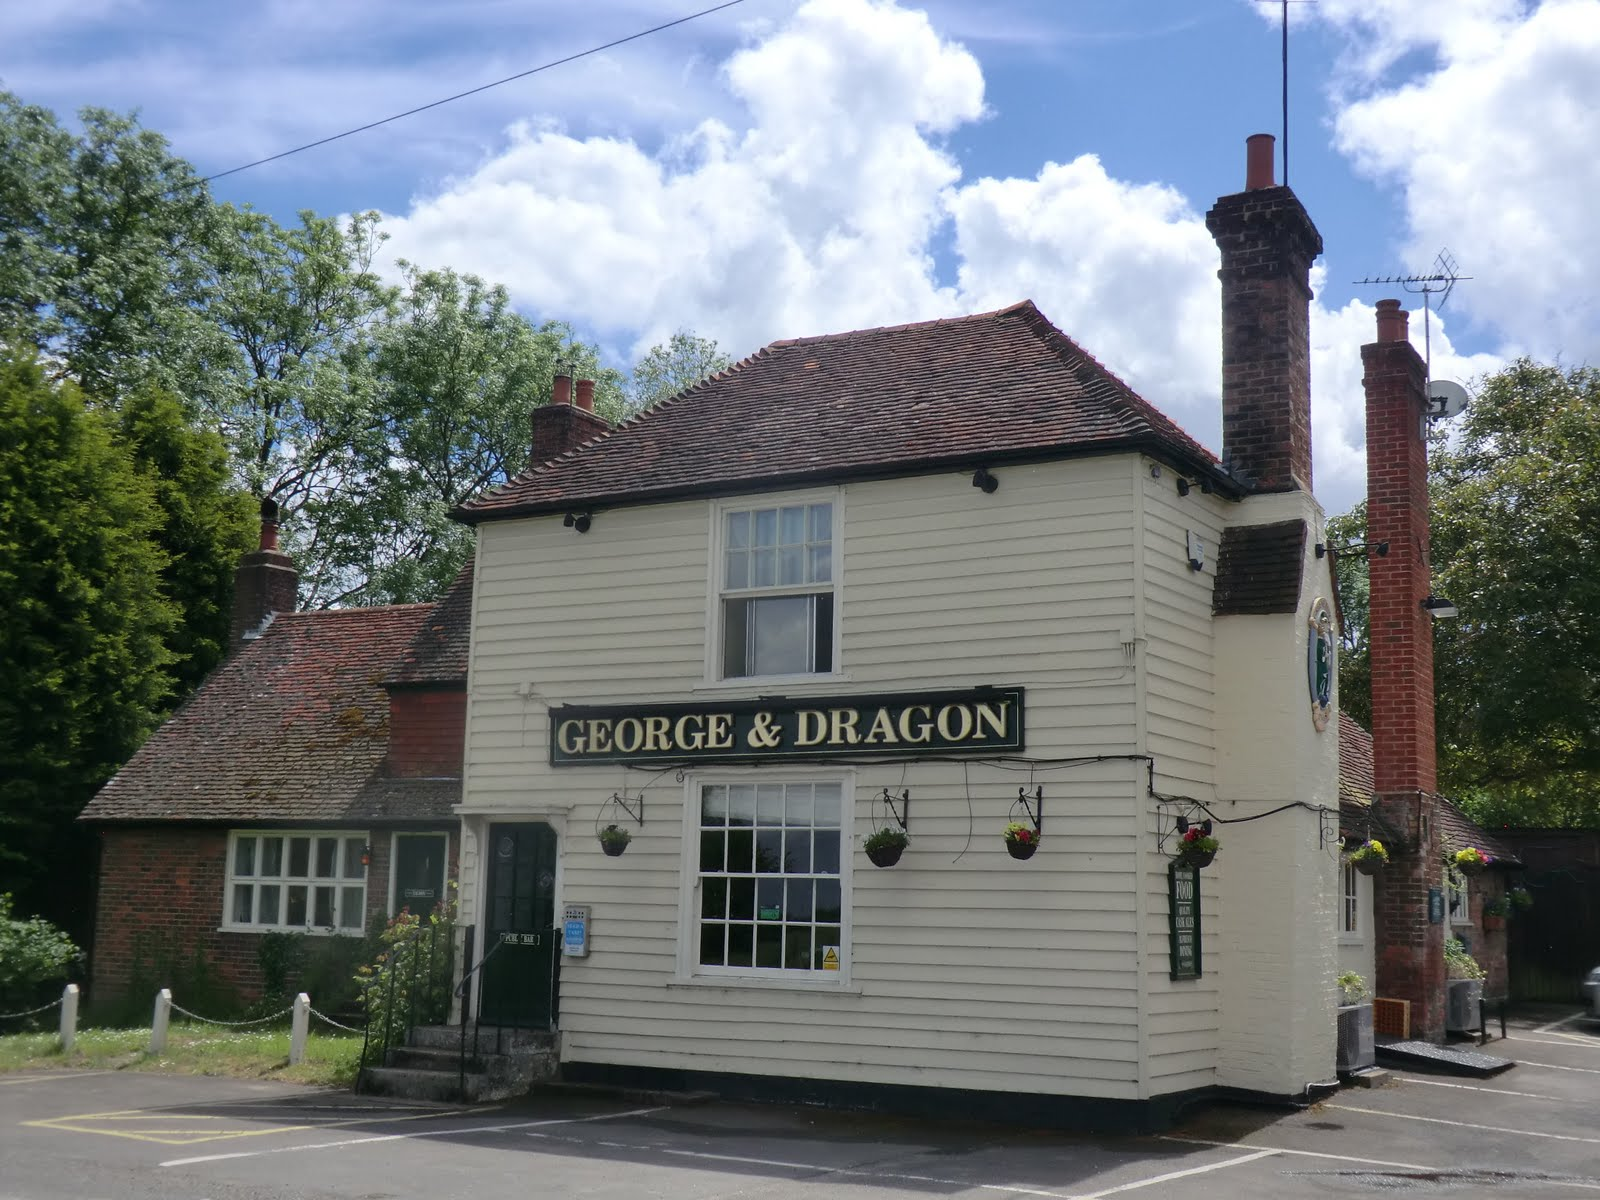 CIMG1593 George & Dragon, Five Oak Green Road